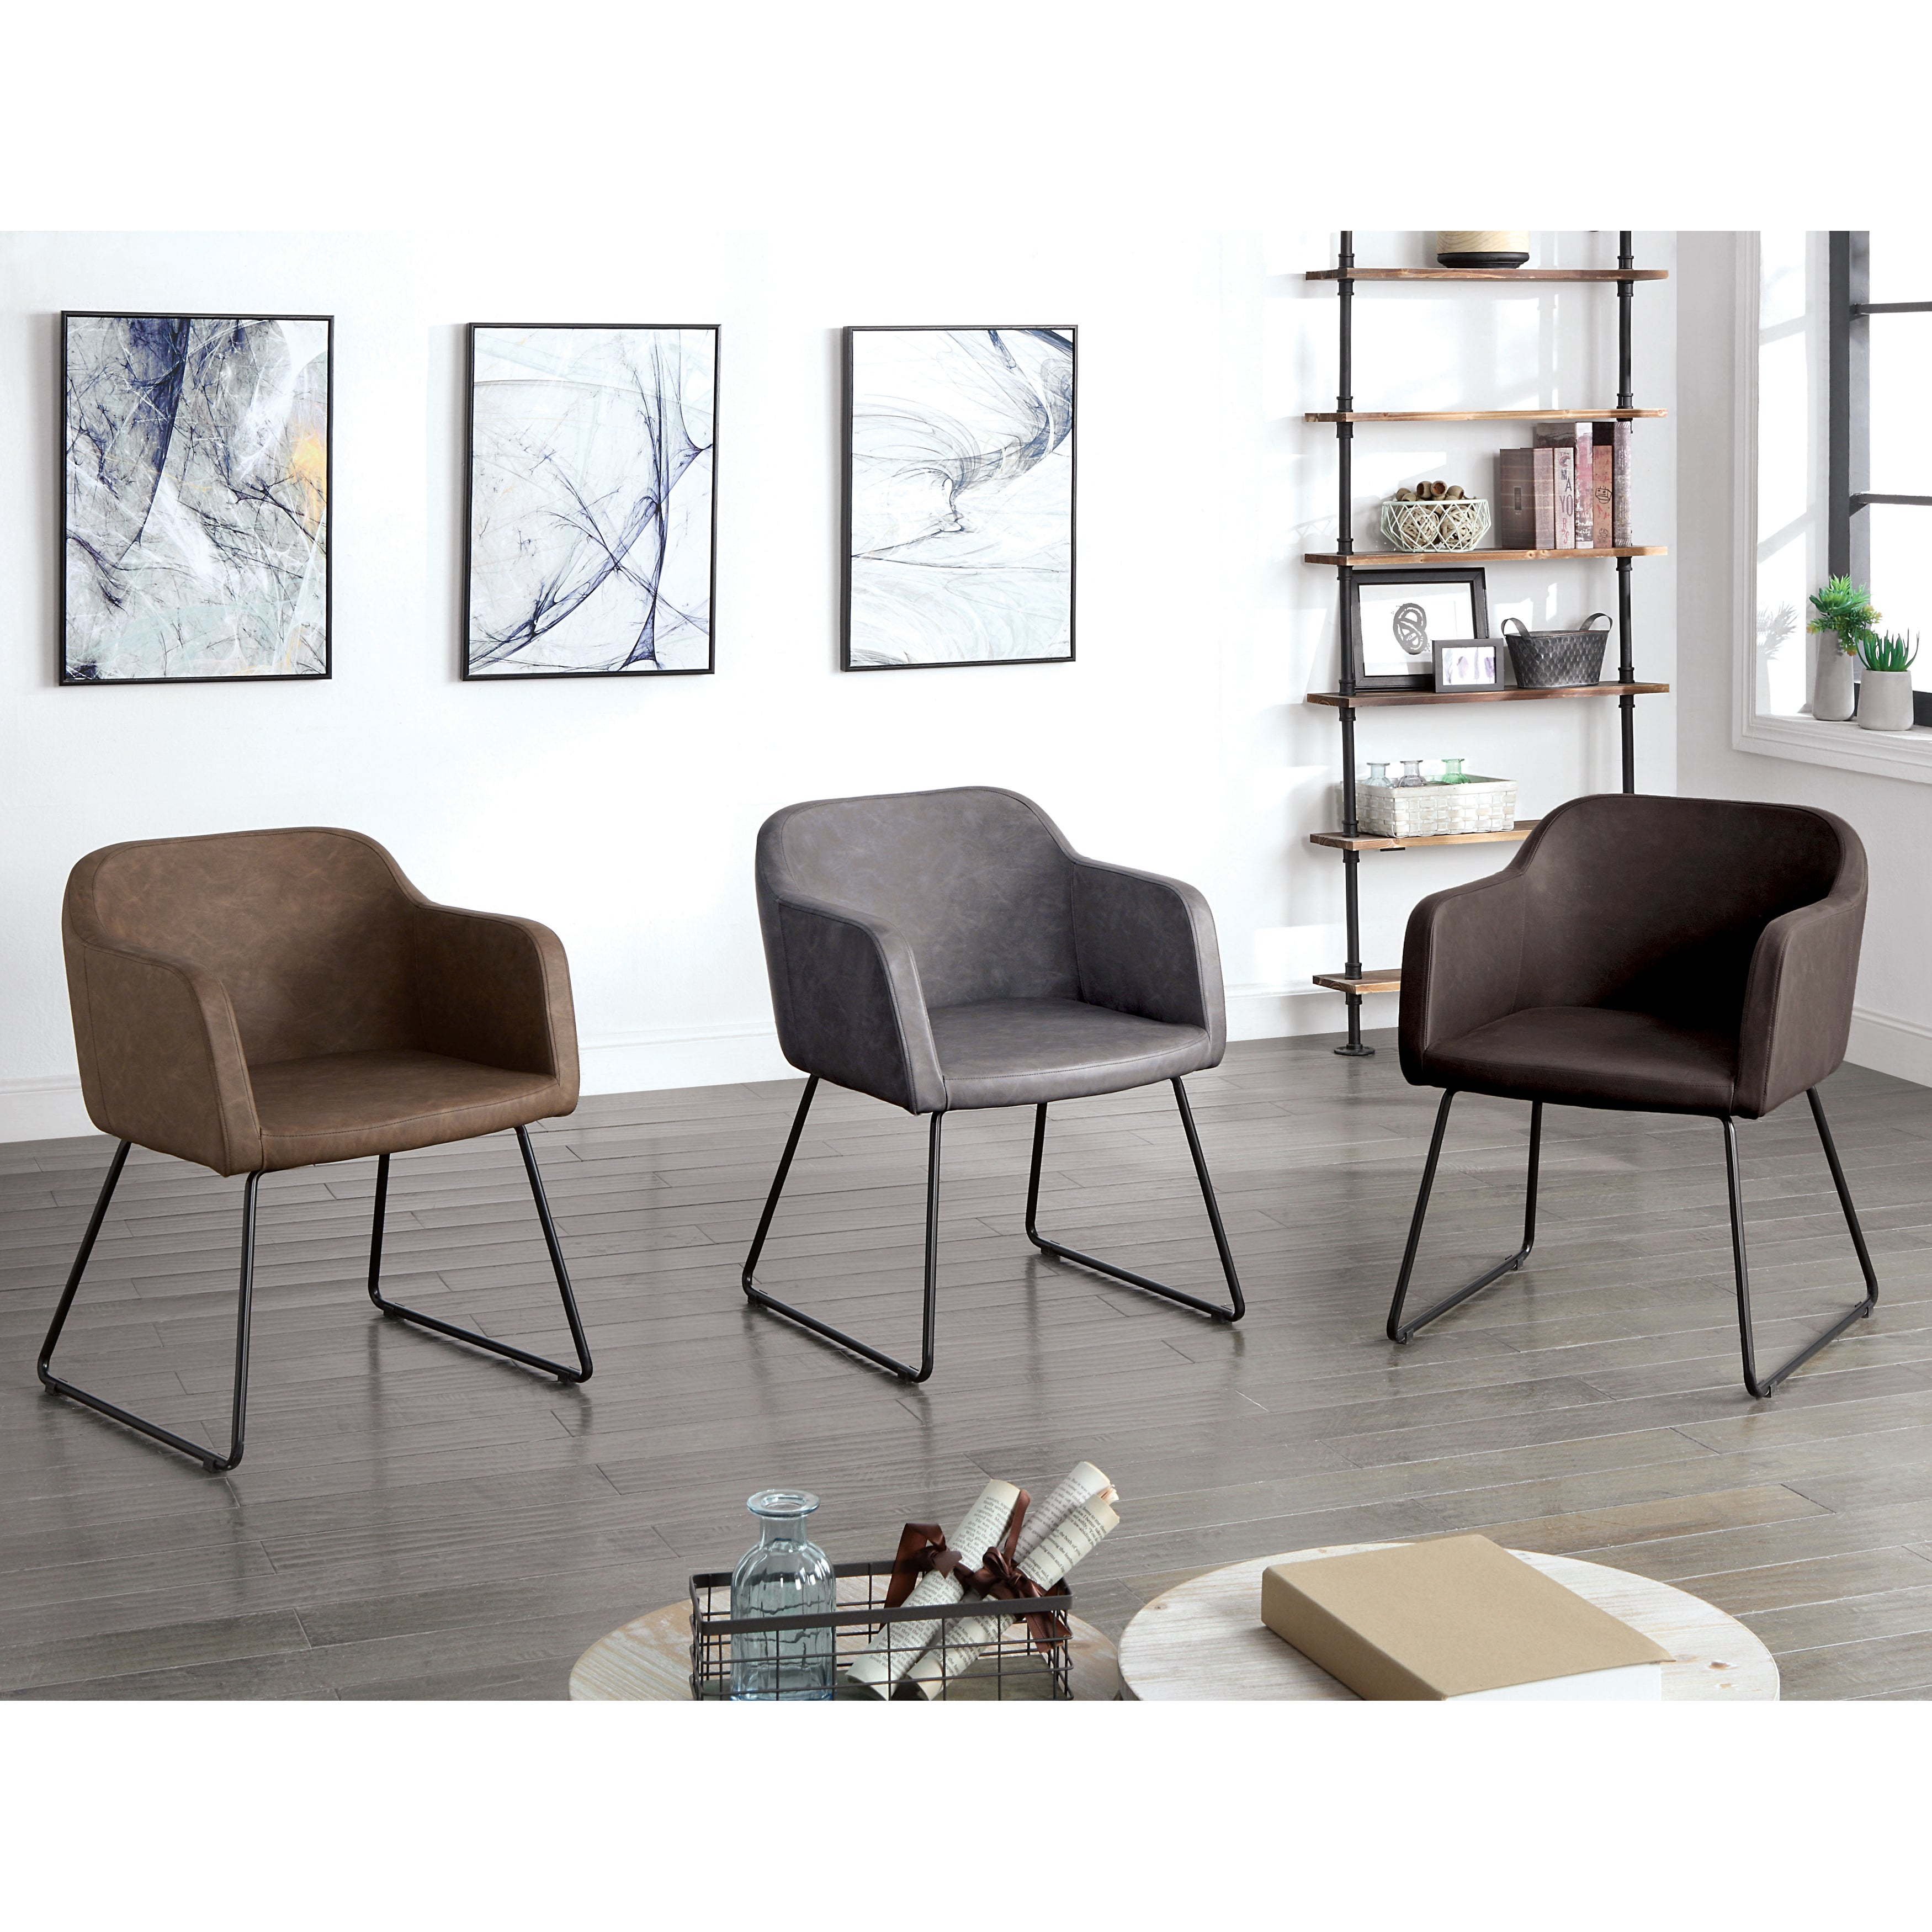 Furniture of america markson mid century modern faux leather accent chair